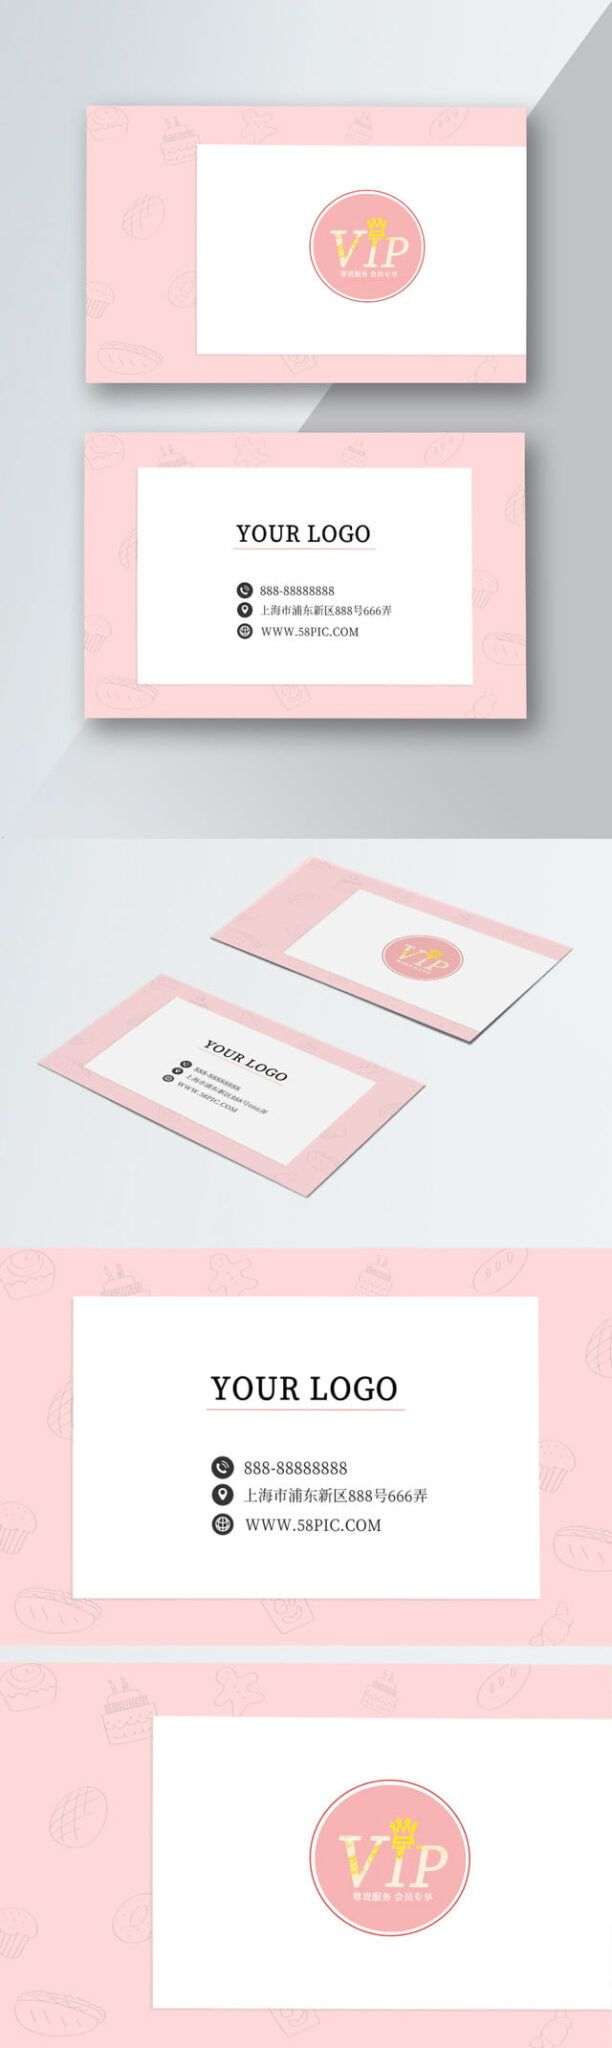 8f04a Cake Shop Business Card Template Business Card Pertaining To Cake Business Cards Tem Card Templates Free Free Business Card Templates Cake Business Cards